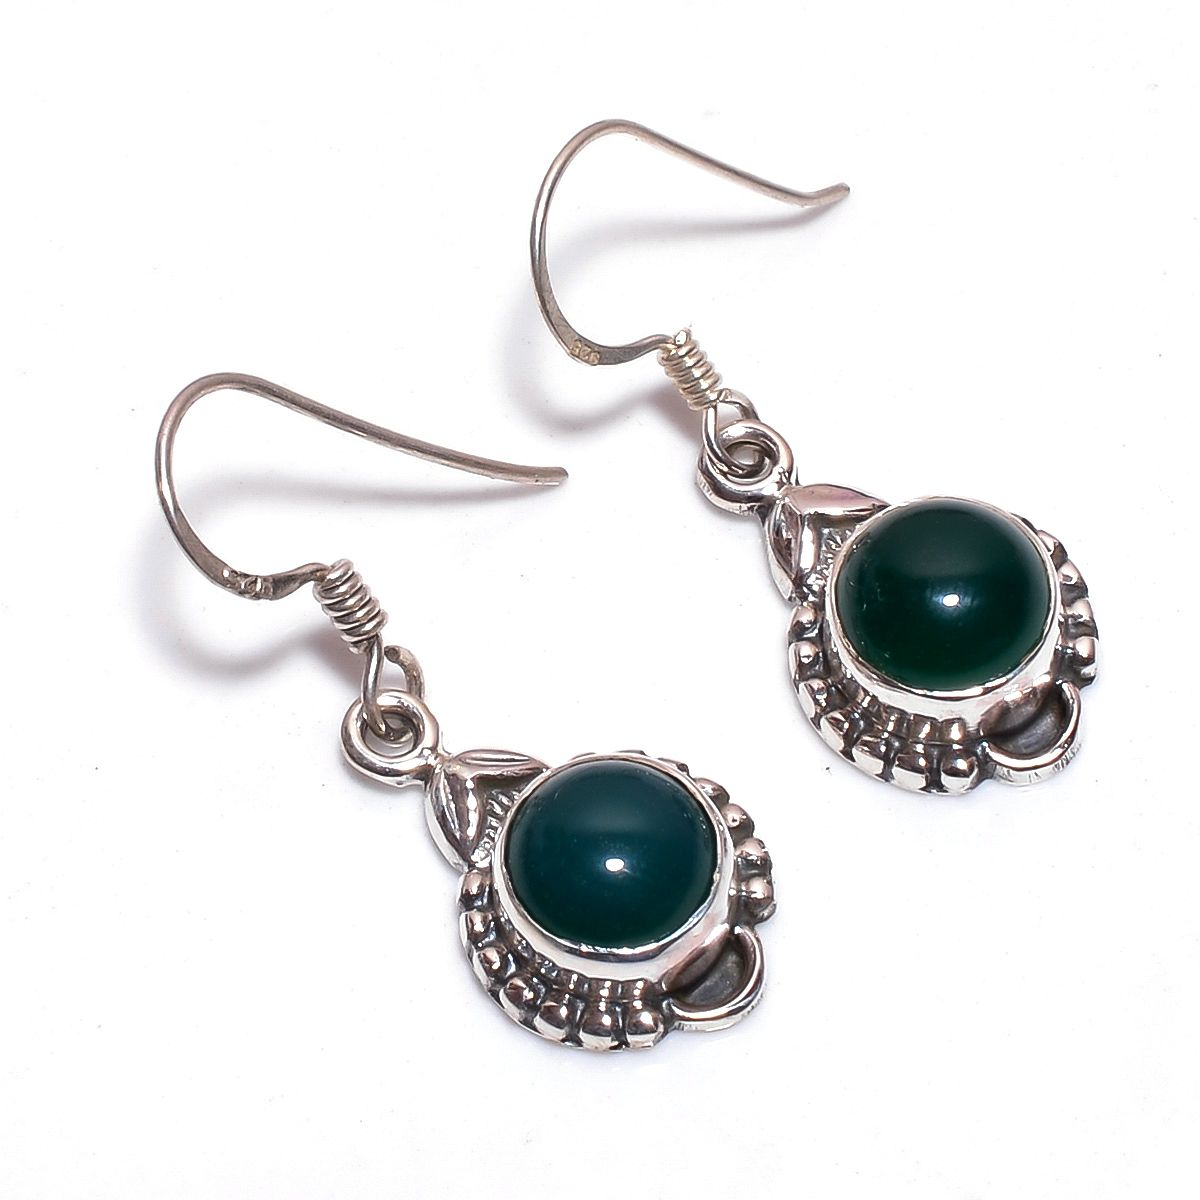 Green Onyx Gemstone 925 Sterling Silver Earrings